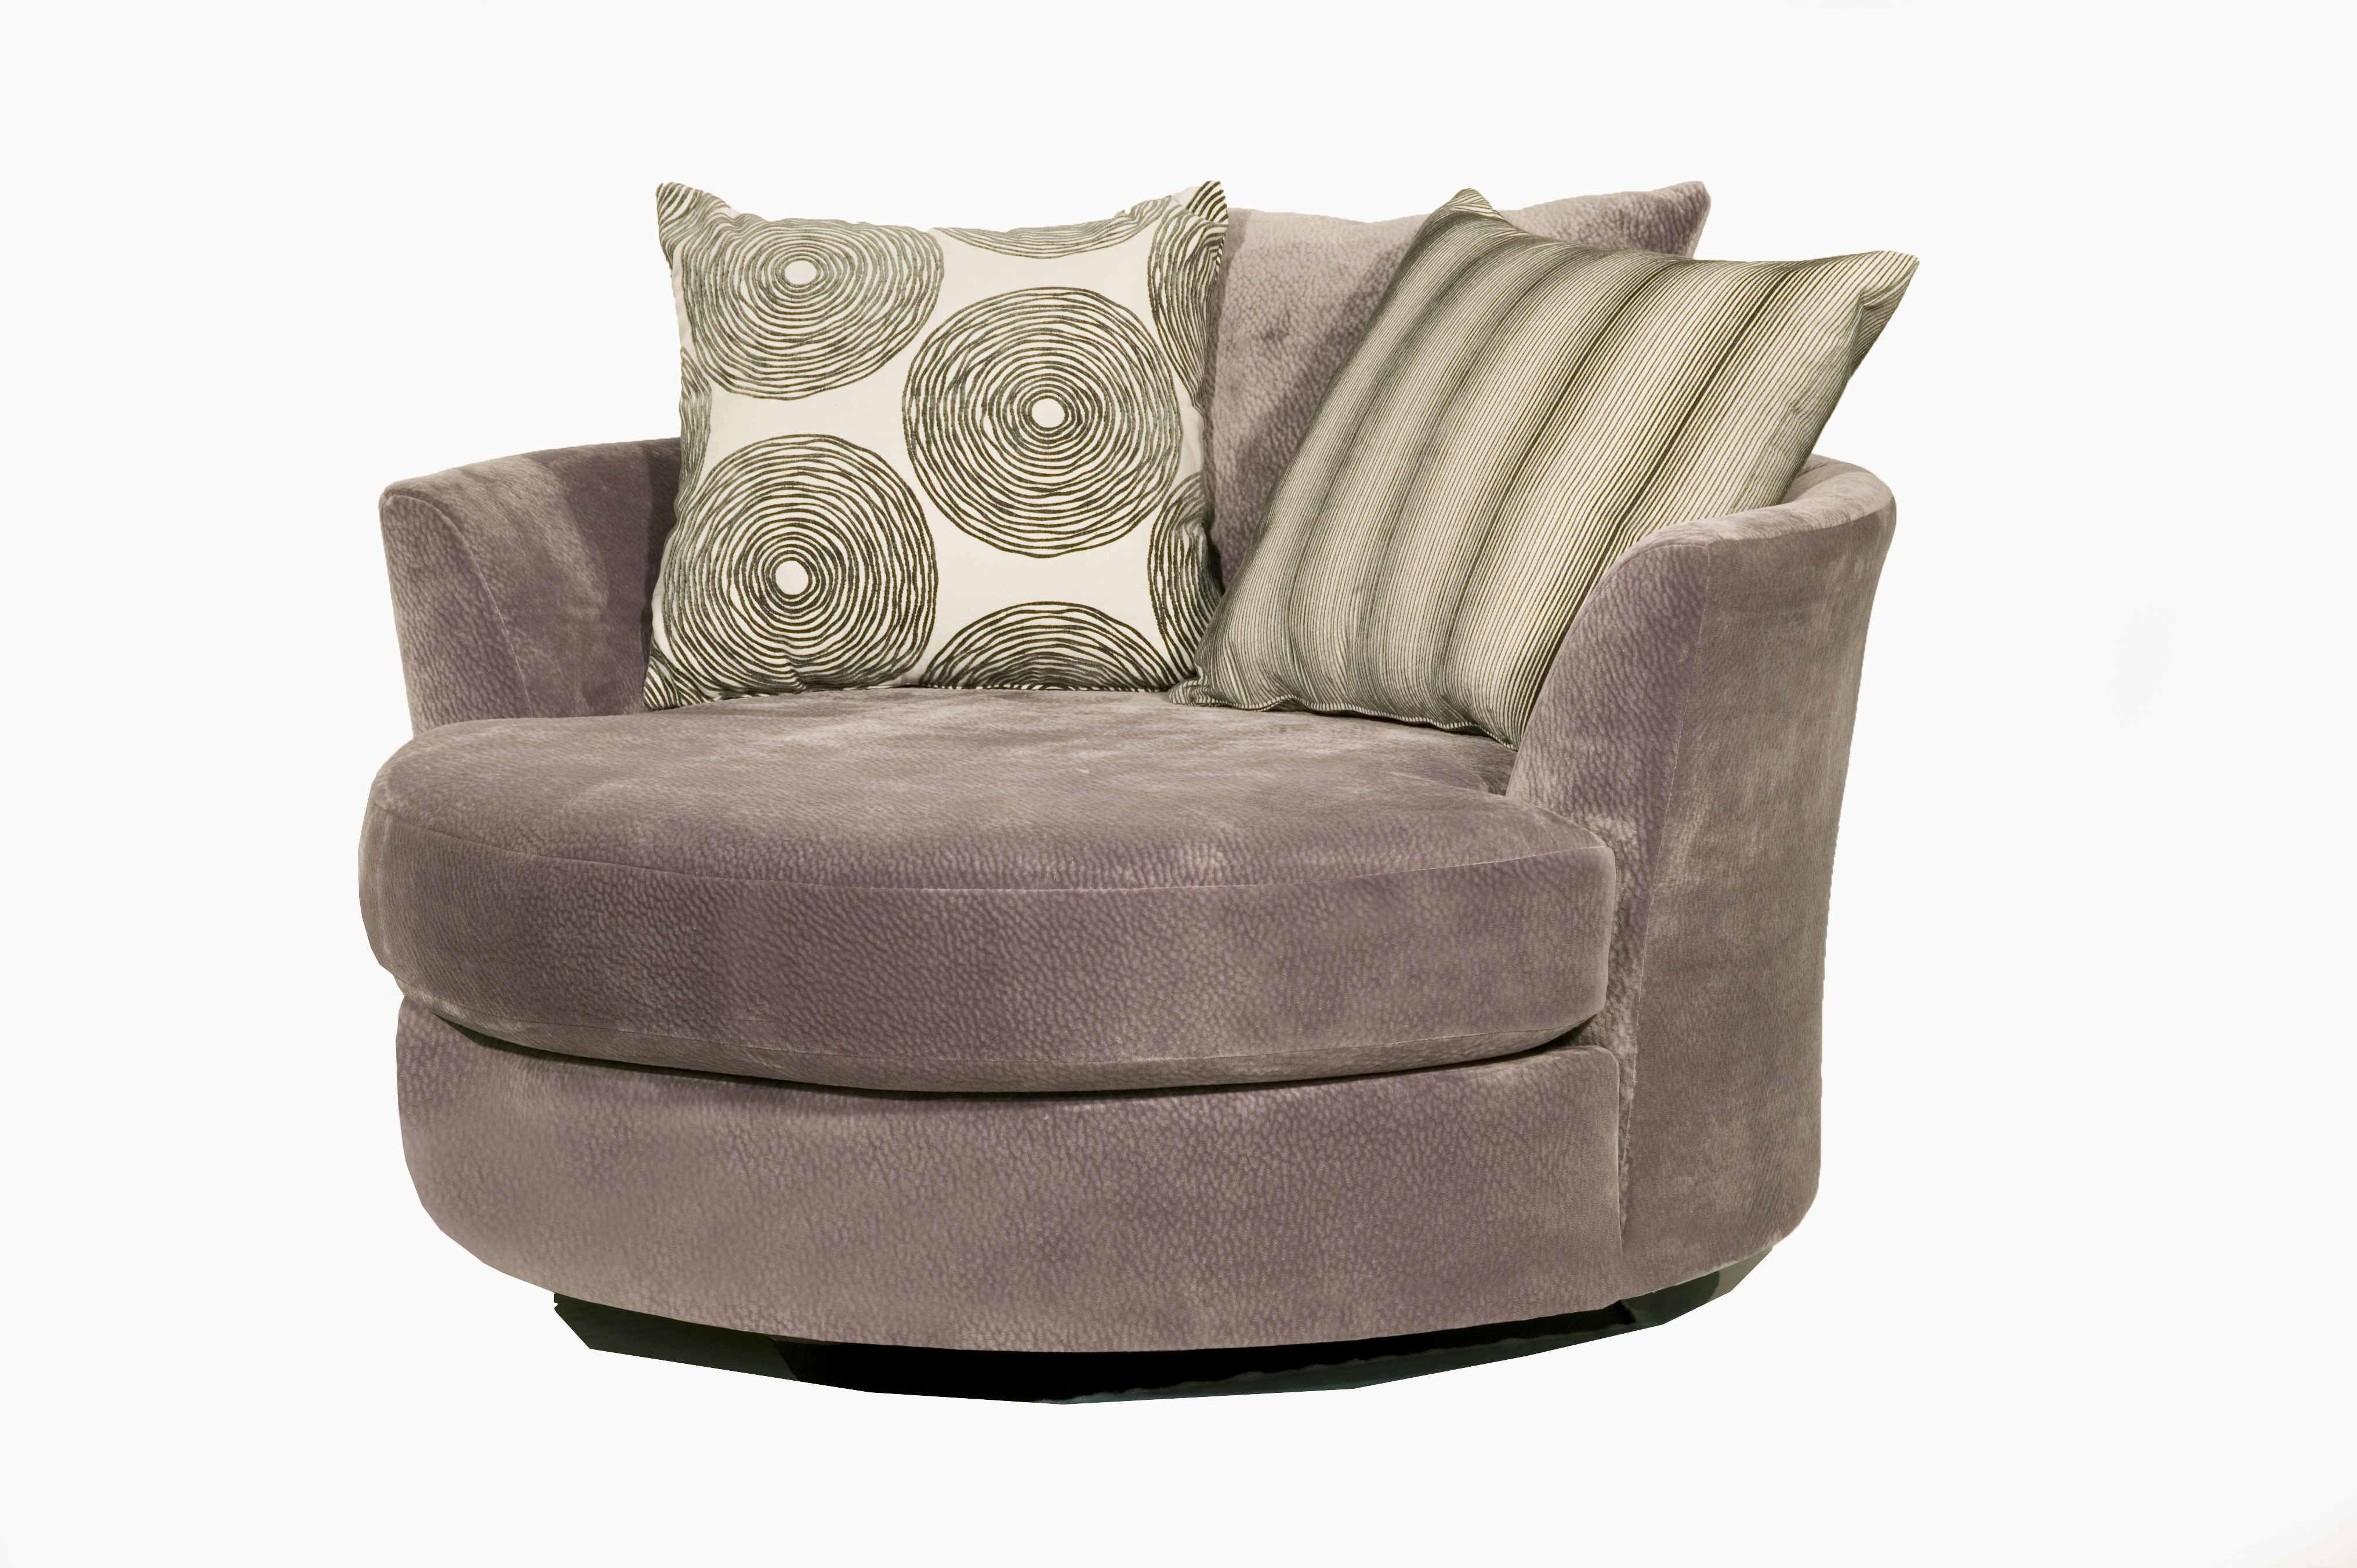 Sofas With Swivel Chair Pertaining To Preferred Jozz Round Swivel Chair (35 Photos) (View 5 of 15)